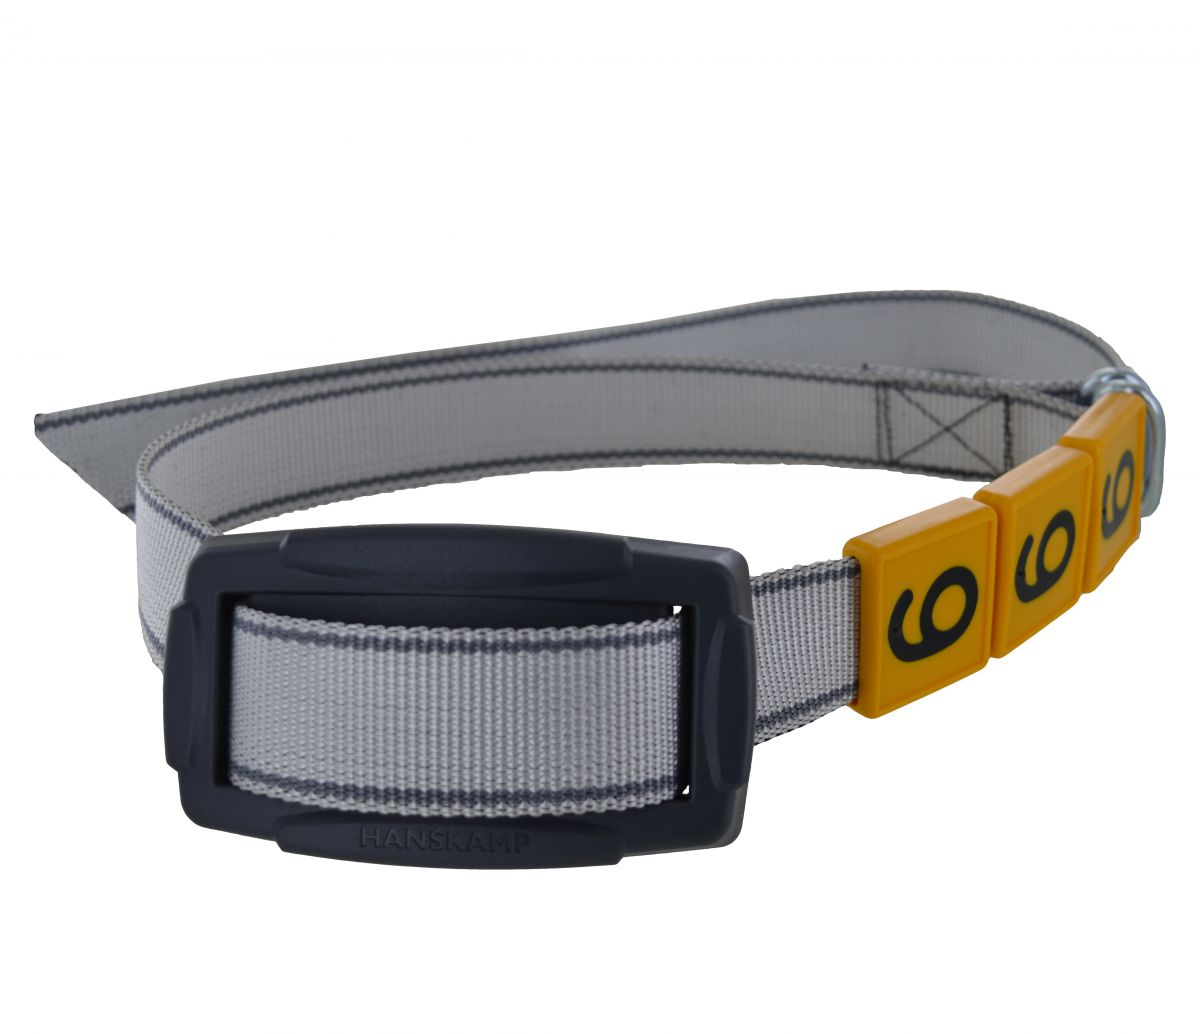 set with spidertag neck strap and id numbers for 180 animals no 1 180